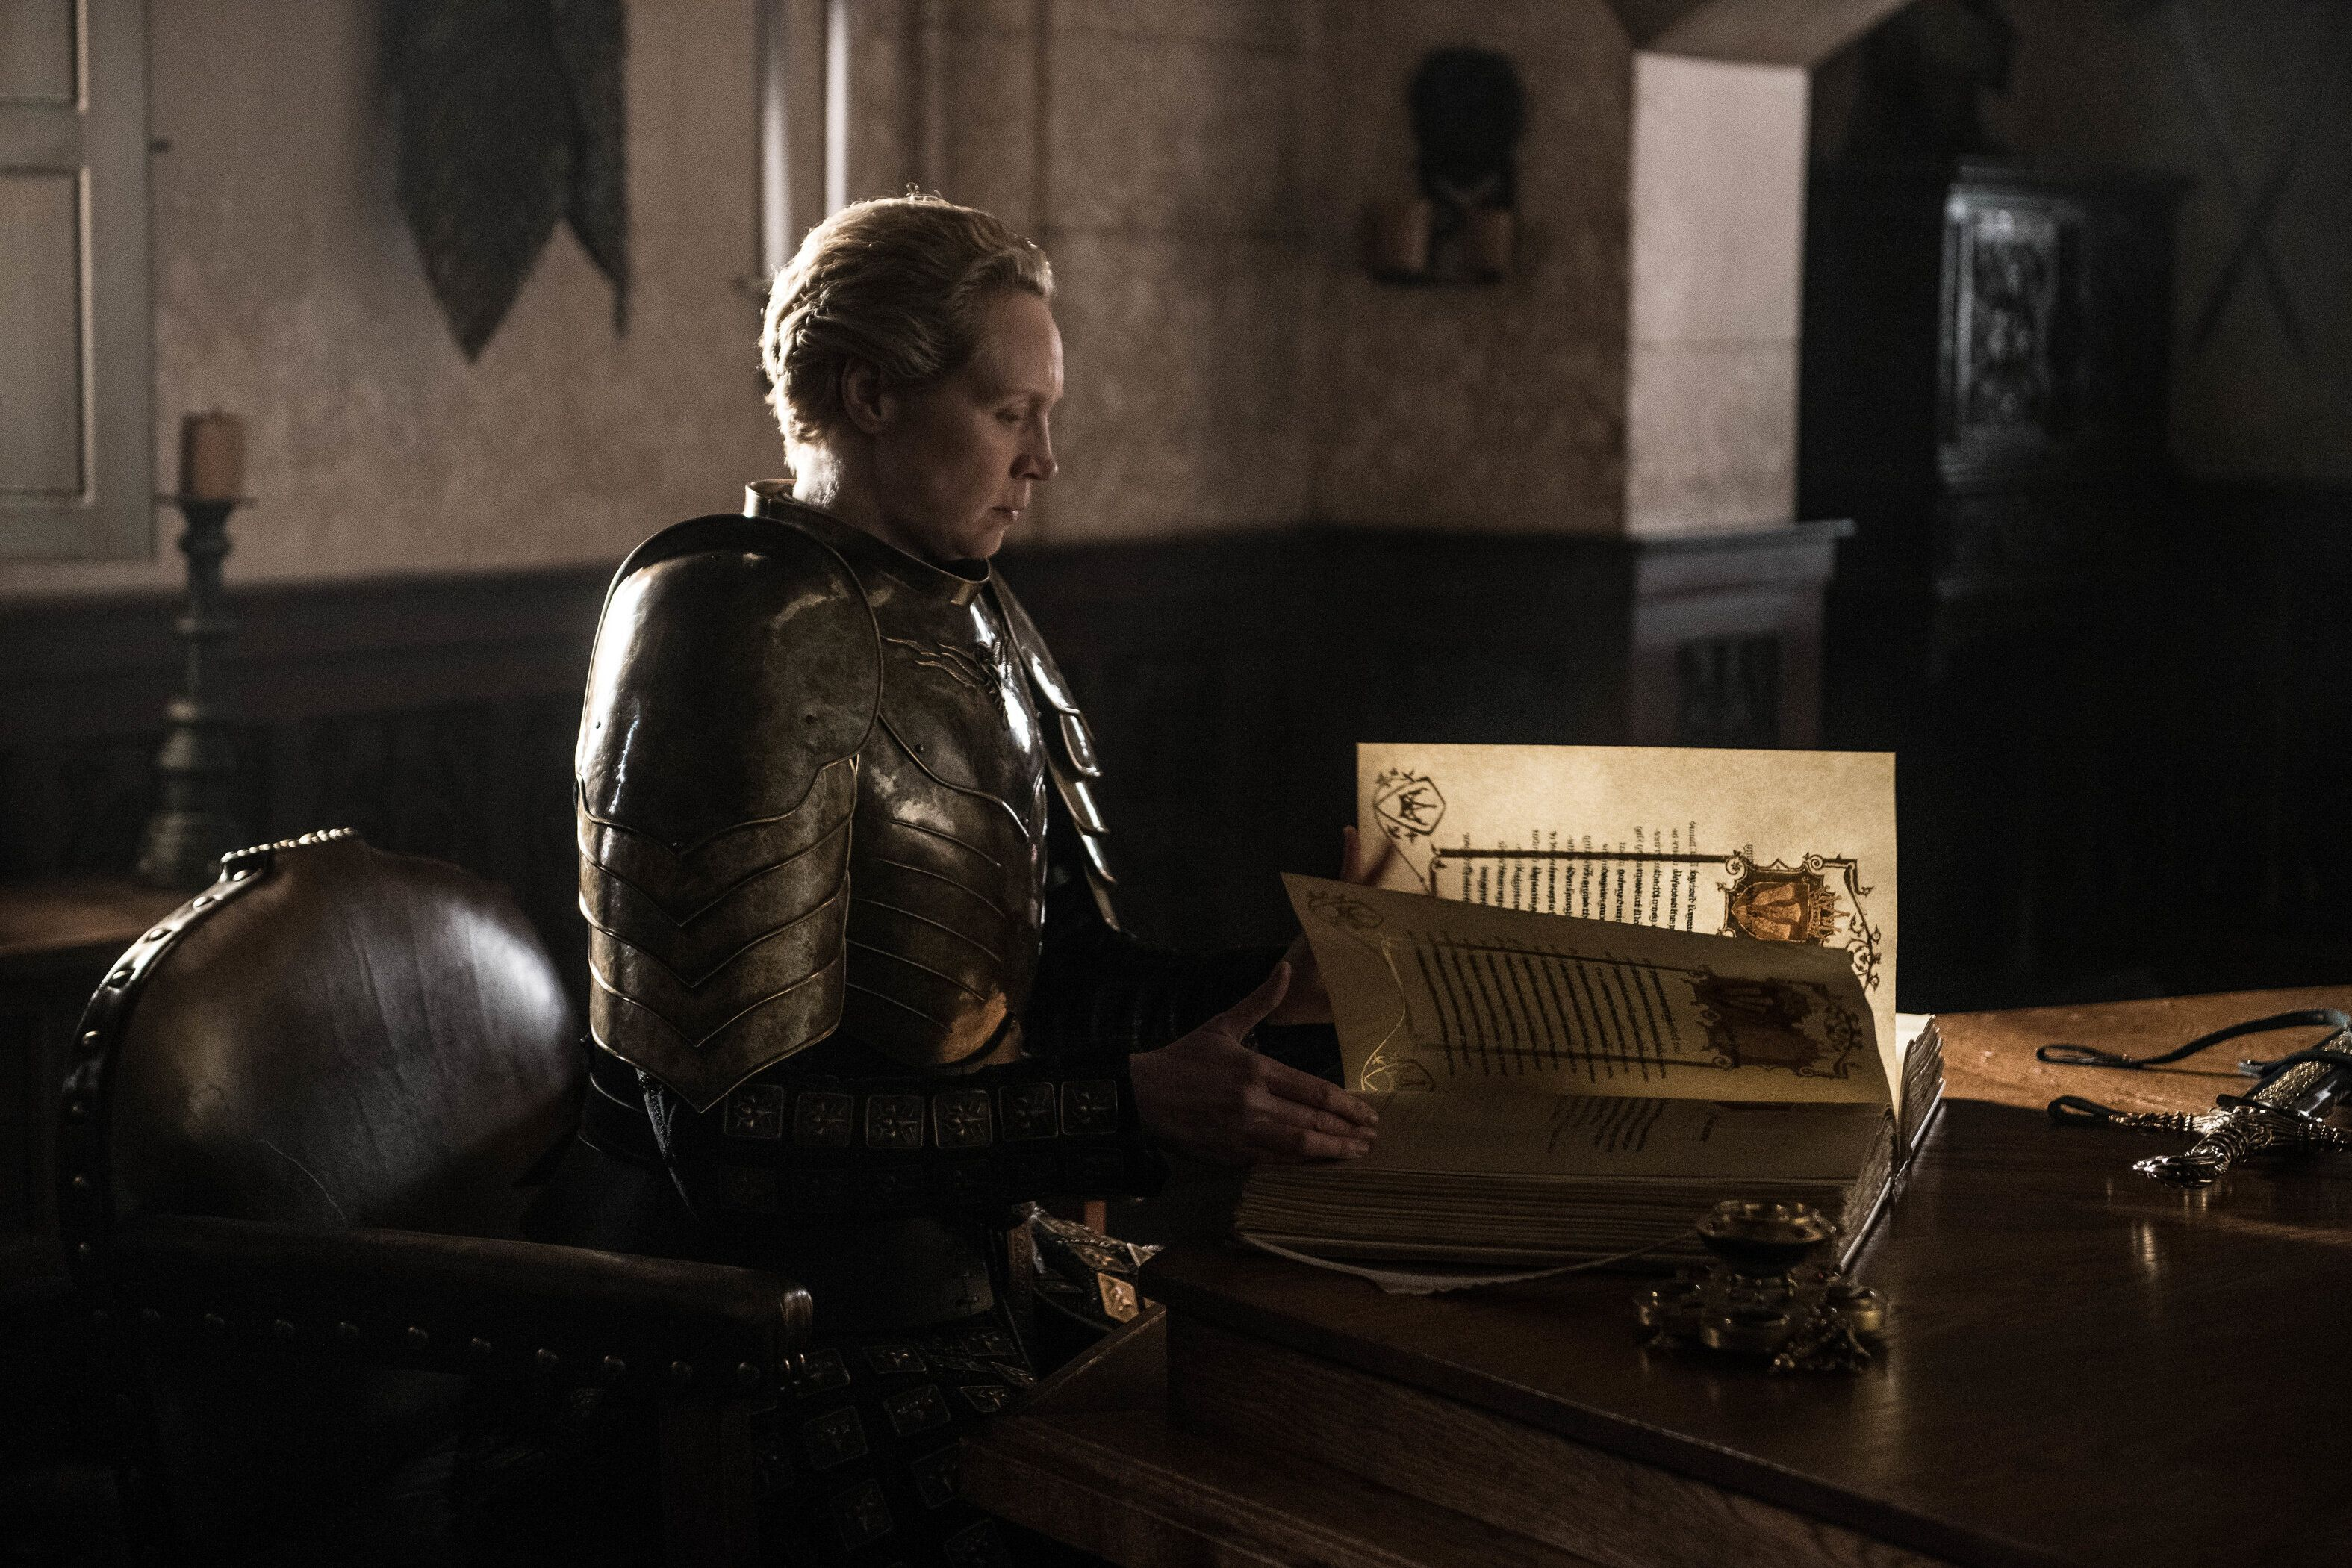 One Important Detail You Missed In The 'Game Of Thrones'